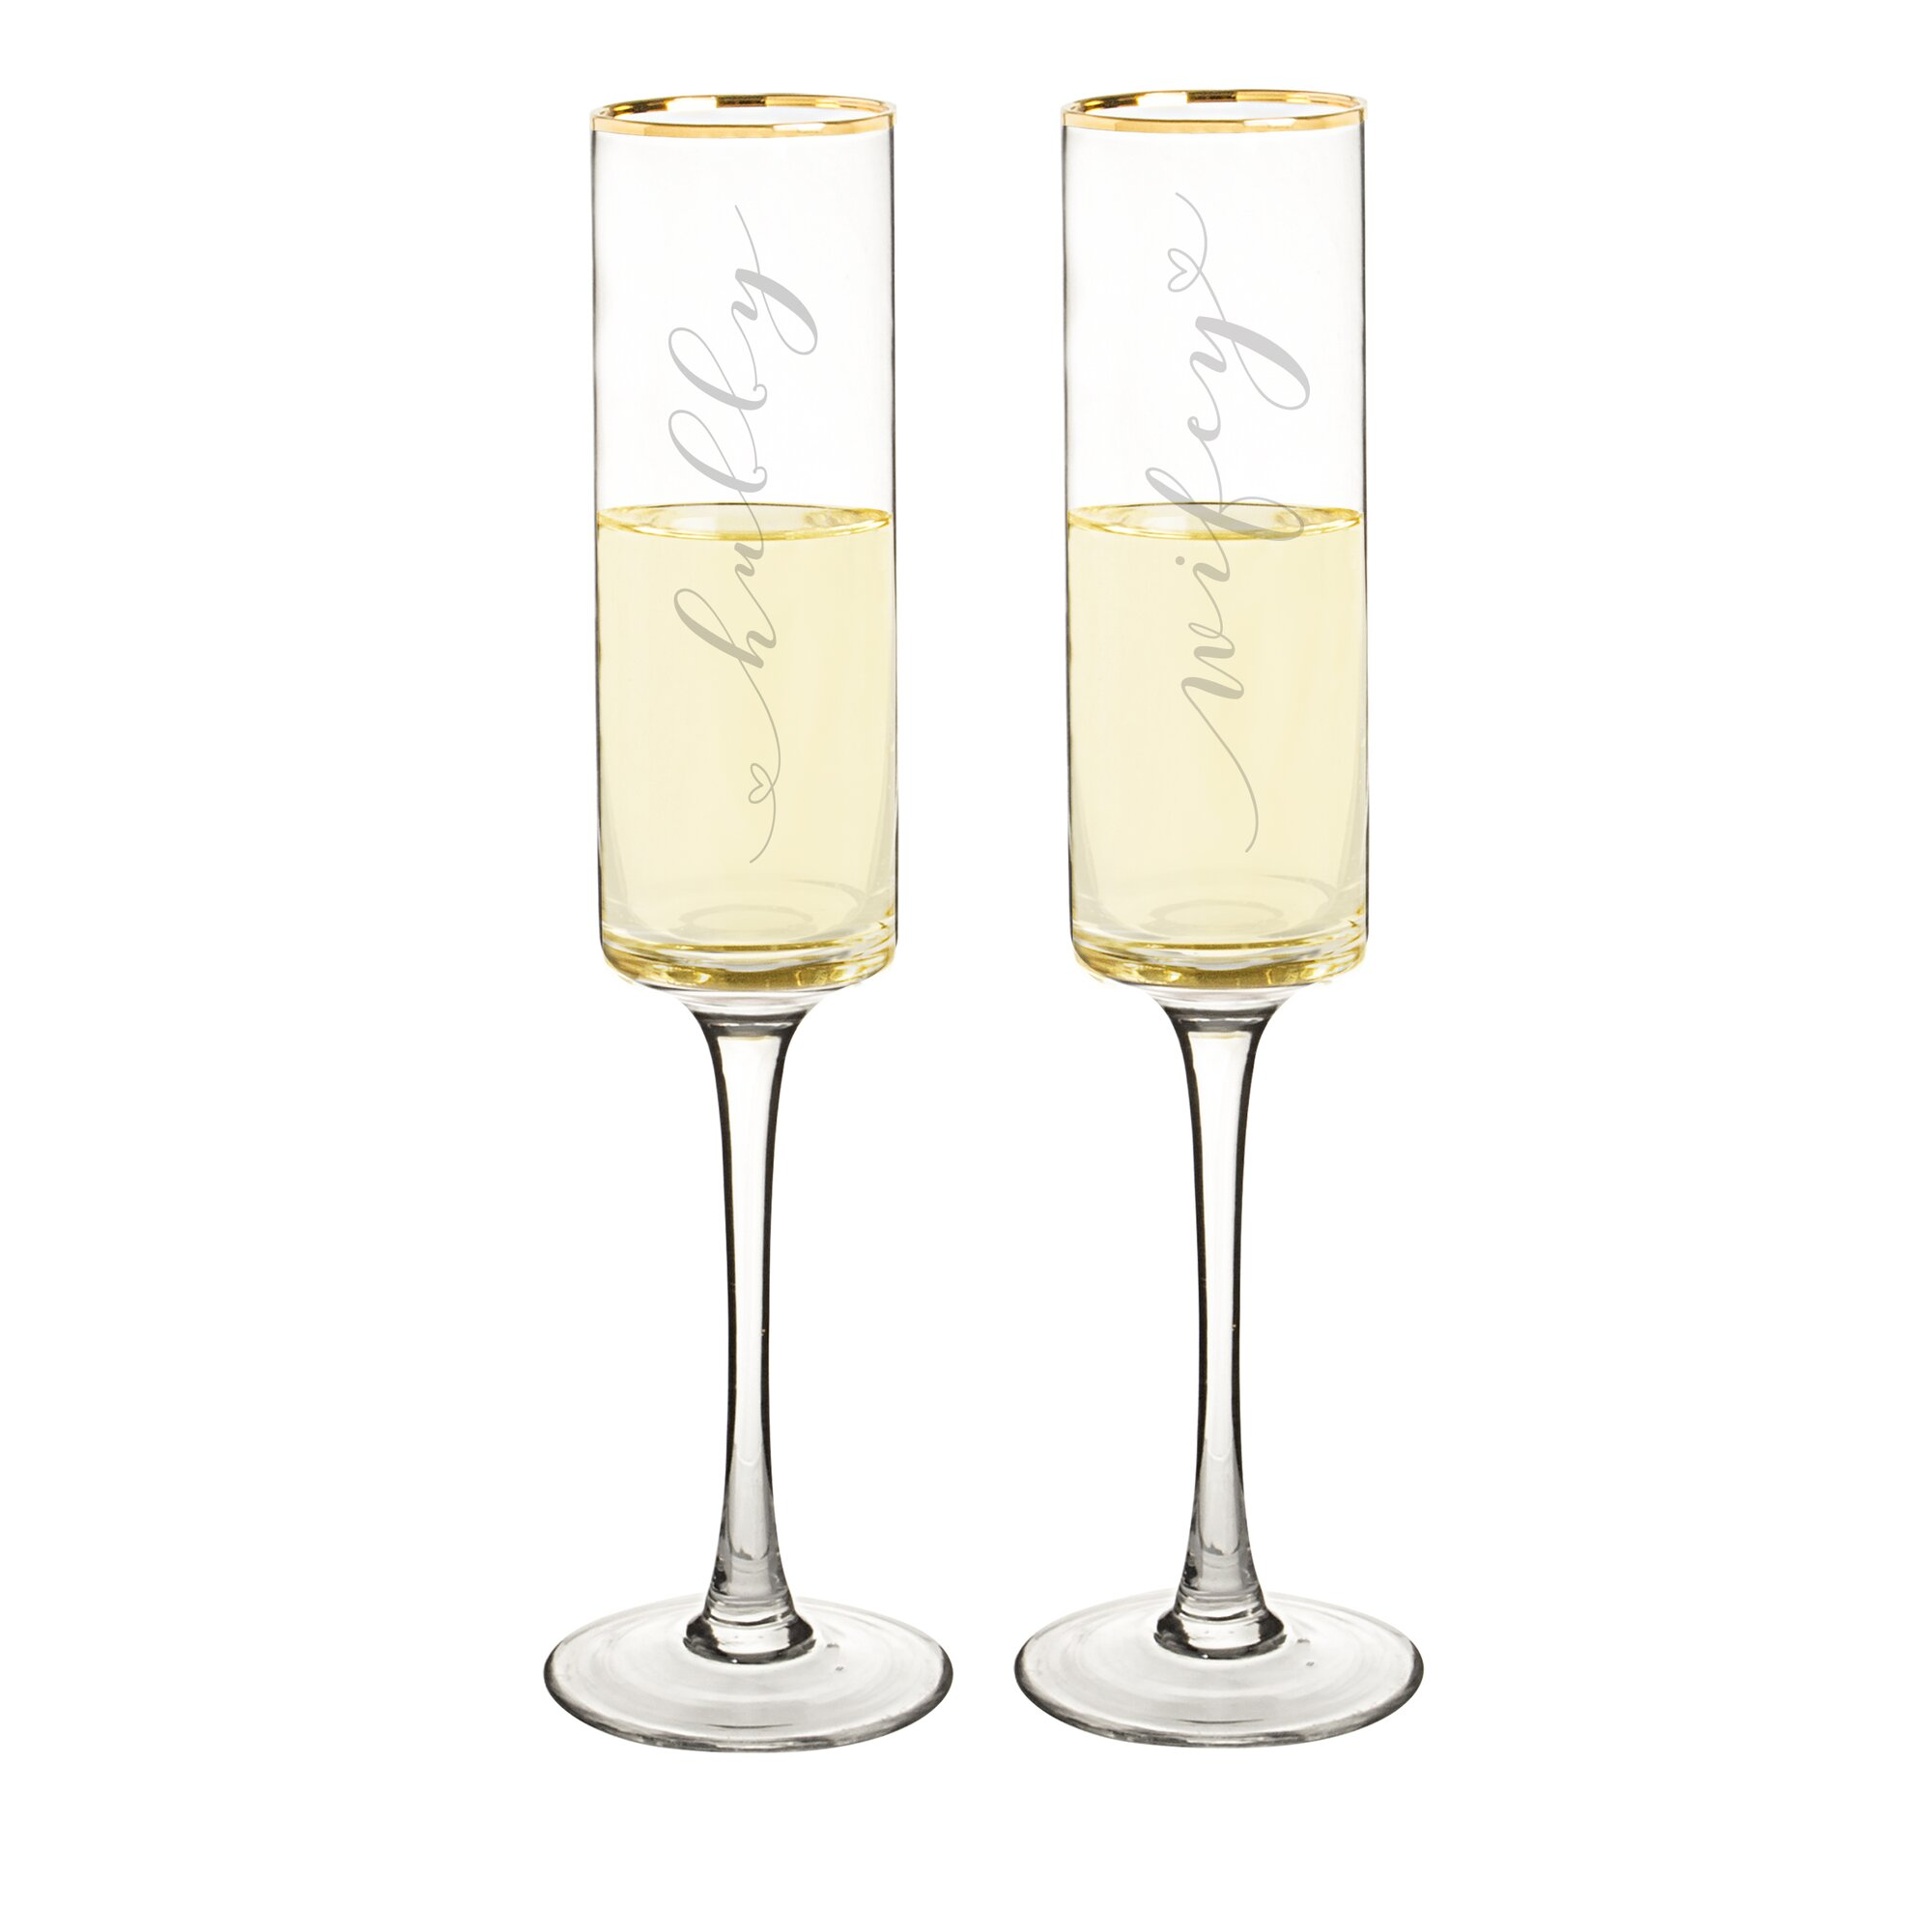 Cathys Concepts Wedding Hubby and Wifey Gold Rim Contemporary Champagne Flutes YCT wedding wine glasses Wedding Hubby and Wifey Gold Rim Contemporary Champagne Flutes